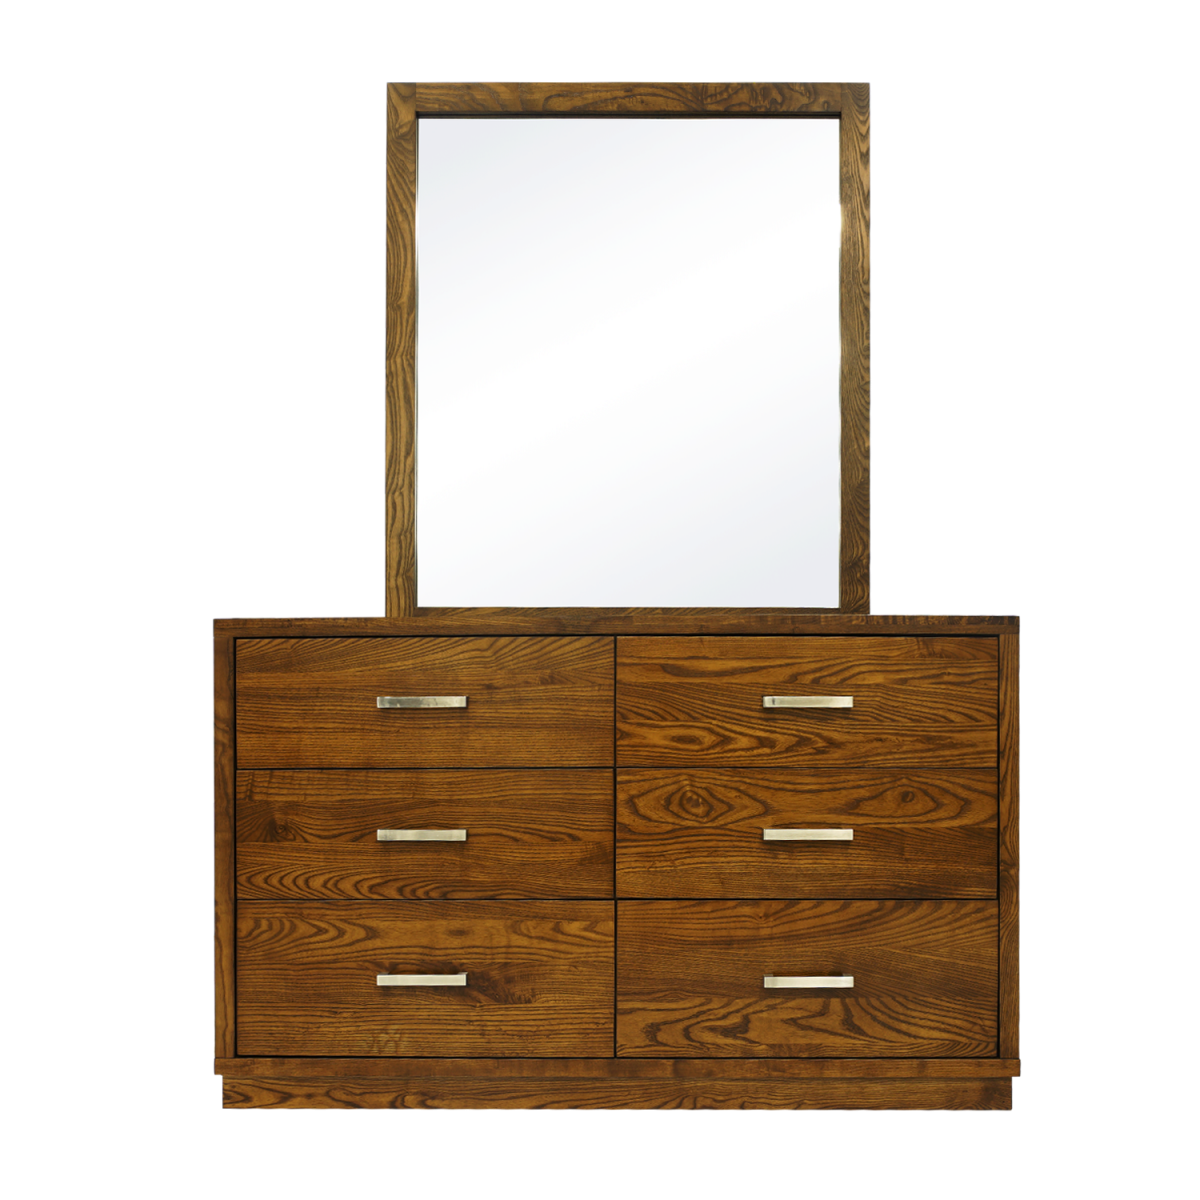 Double Star Furniture Library Dressing Table With Mirror